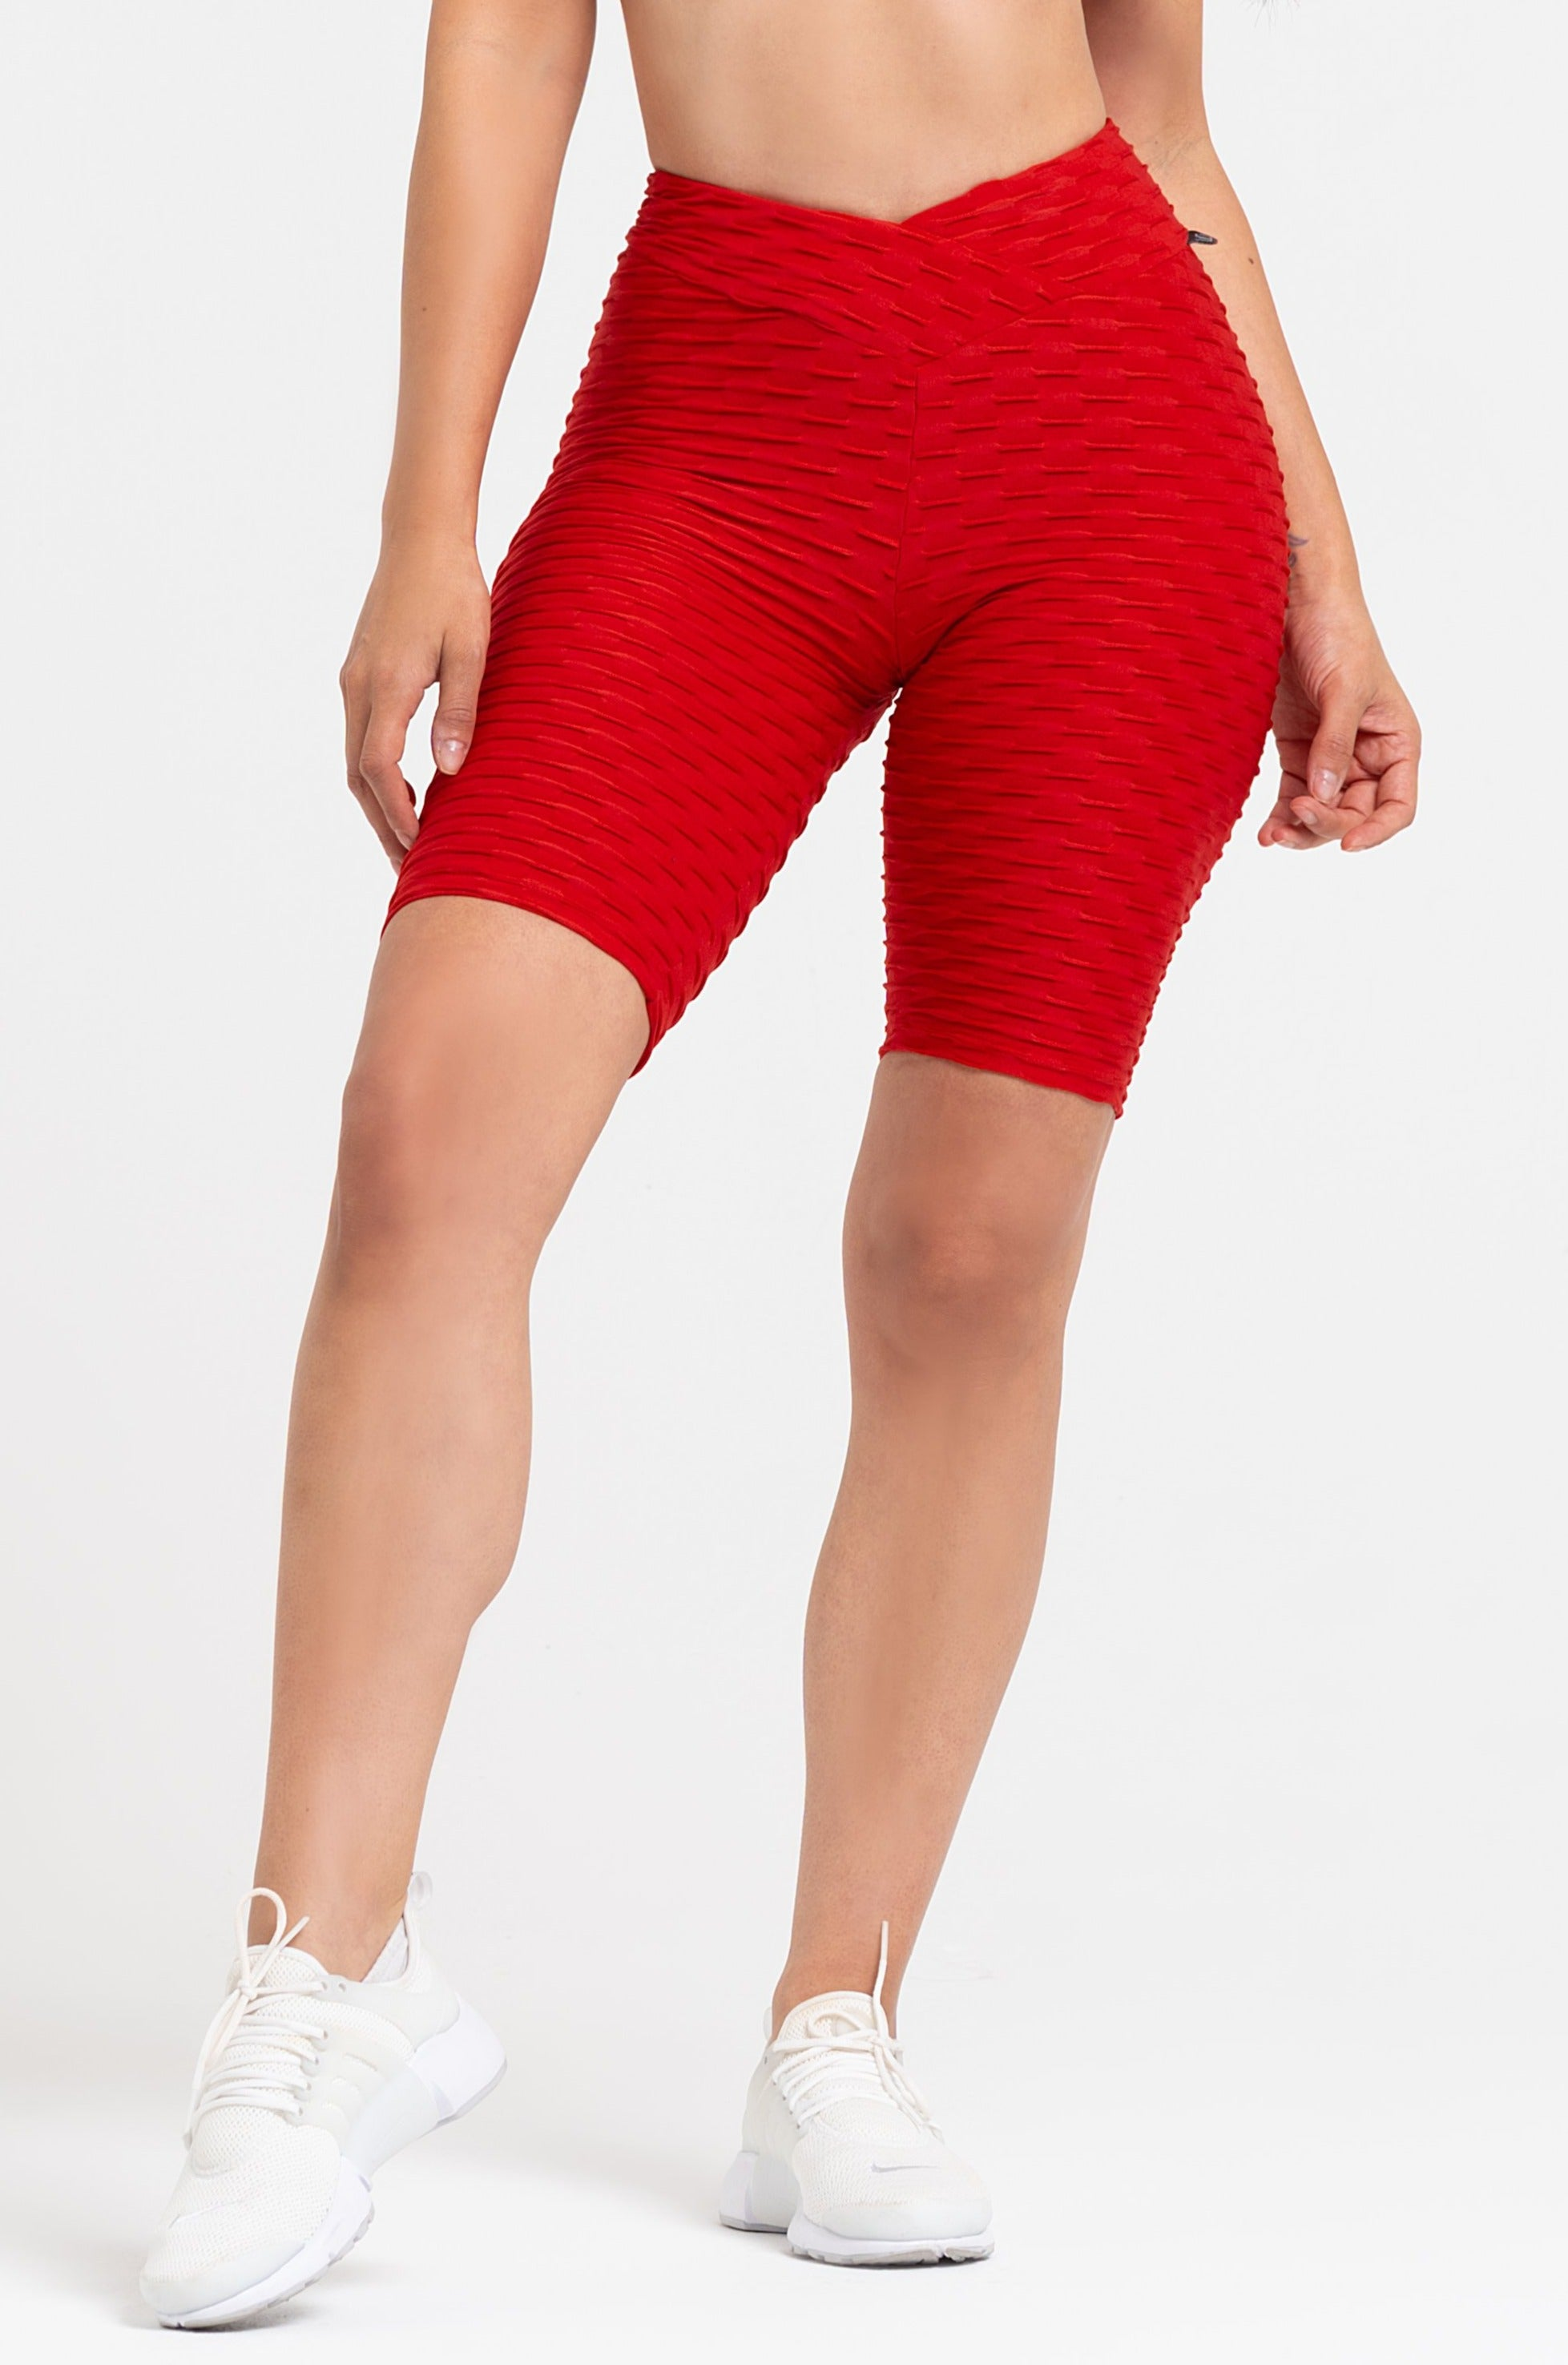 Red Textured V-Cut Scrunch Biker Shorts